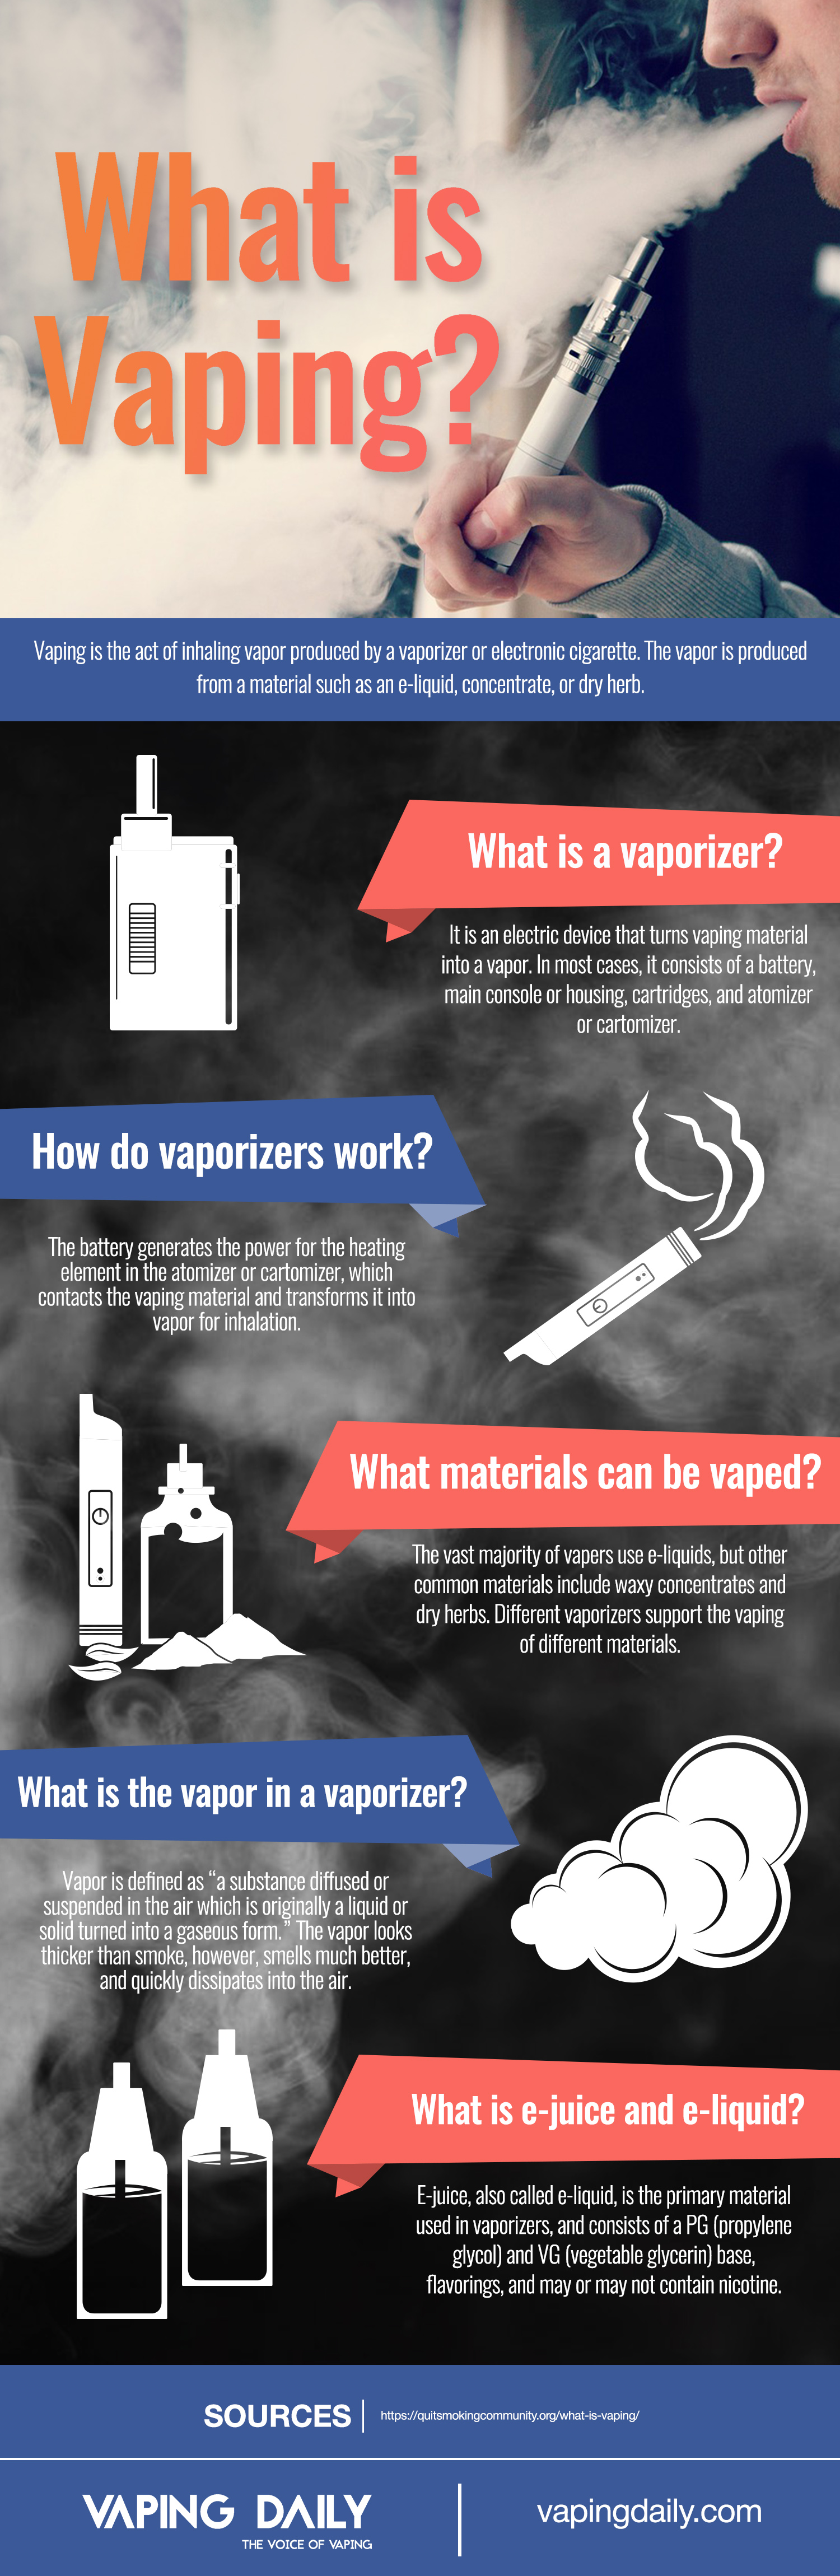 [Image: What-is-Vaping-info-2.jpg]